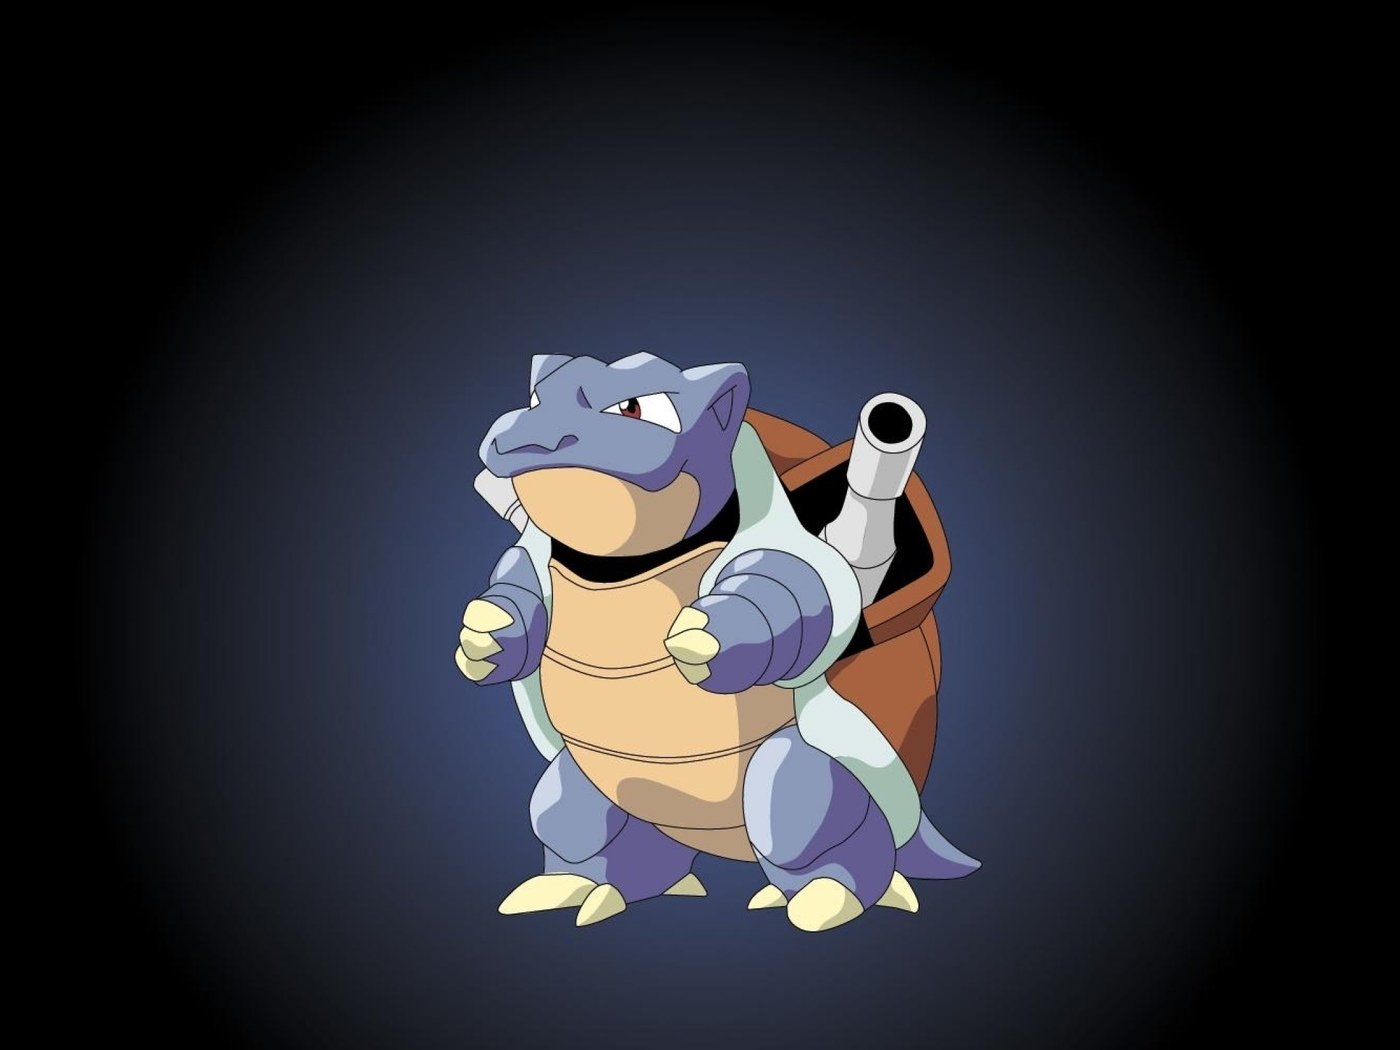 blastoise, pokemon